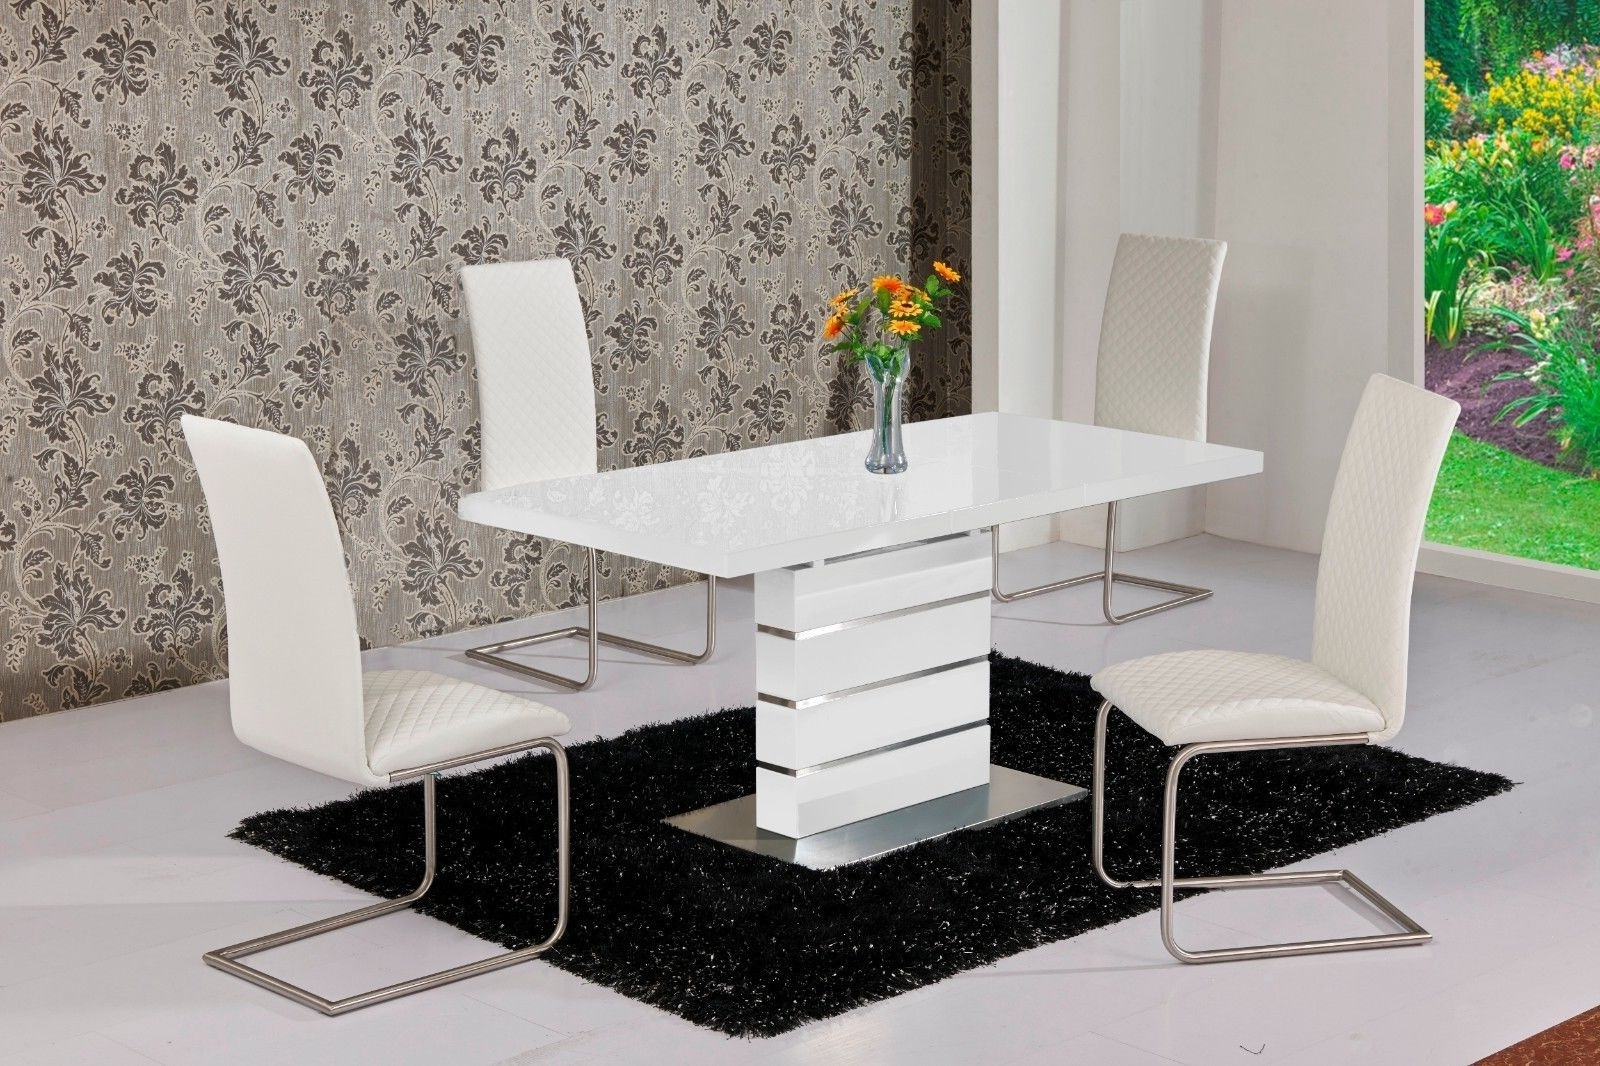 Newest Mace High Gloss Extending 120 160 Dining Table & Chair Set – White Inside White Dining Sets (View 17 of 25)